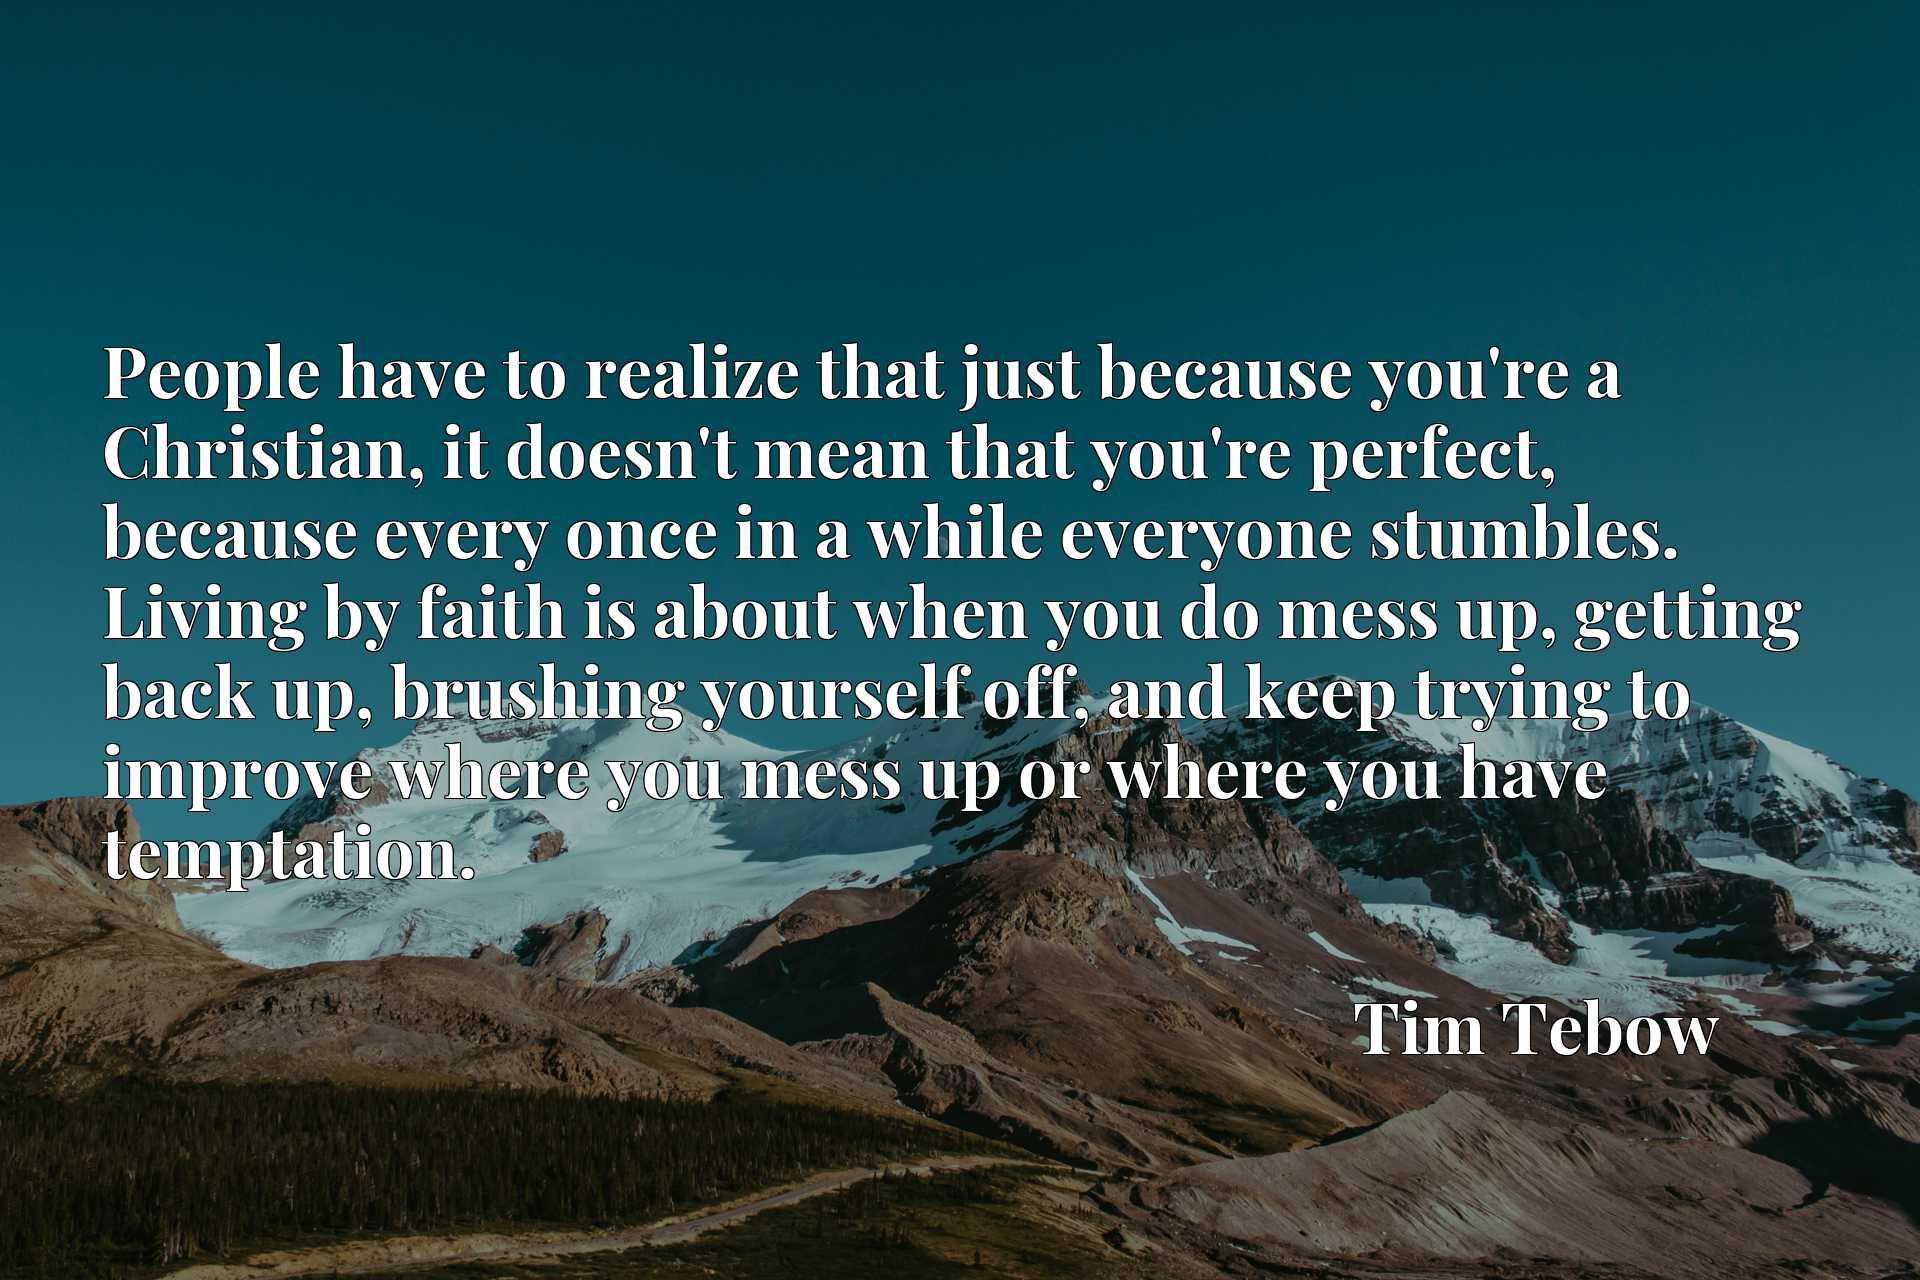 People have to realize that just because you're a Christian, it doesn't mean that you're perfect, because every once in a while everyone stumbles. Living by faith is about when you do mess up, getting back up, brushing yourself off, and keep trying to improve where you mess up or where you have temptation.